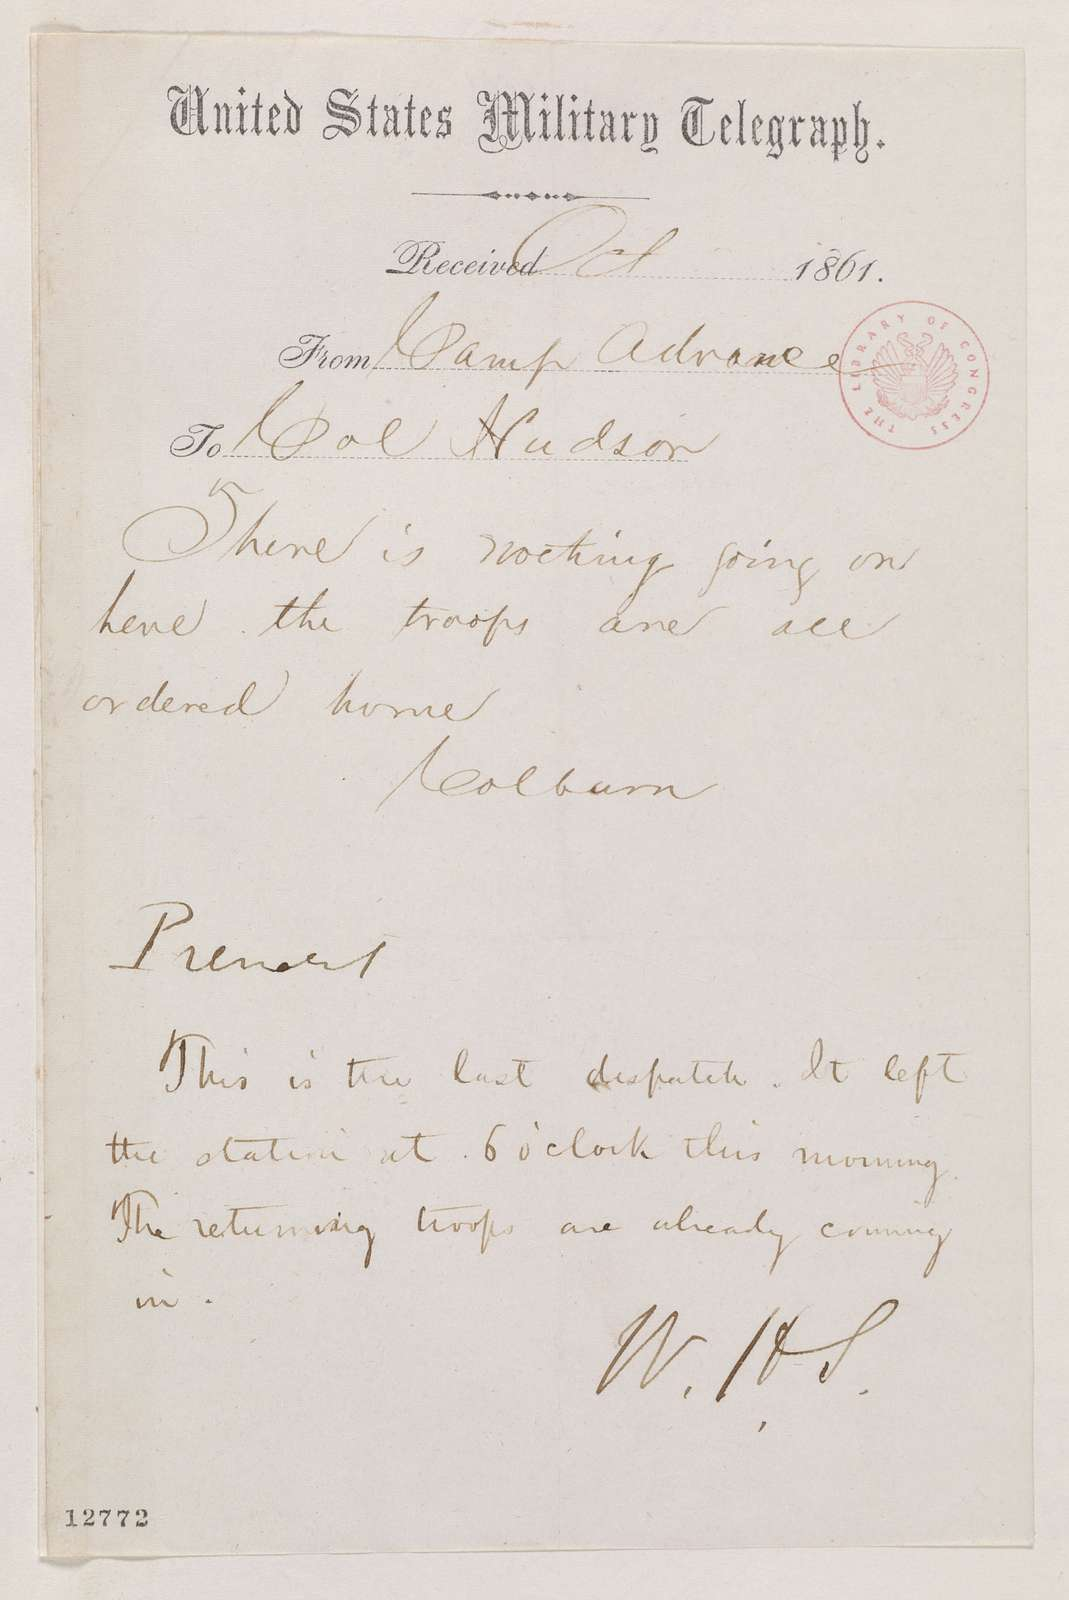 Abraham Lincoln papers: Series 1. General Correspondence. 1833-1916: Albert V. Colburn to Hudson, October 1861 (Telegram regarding military affairs; endorsed by William Seward to Lincoln)